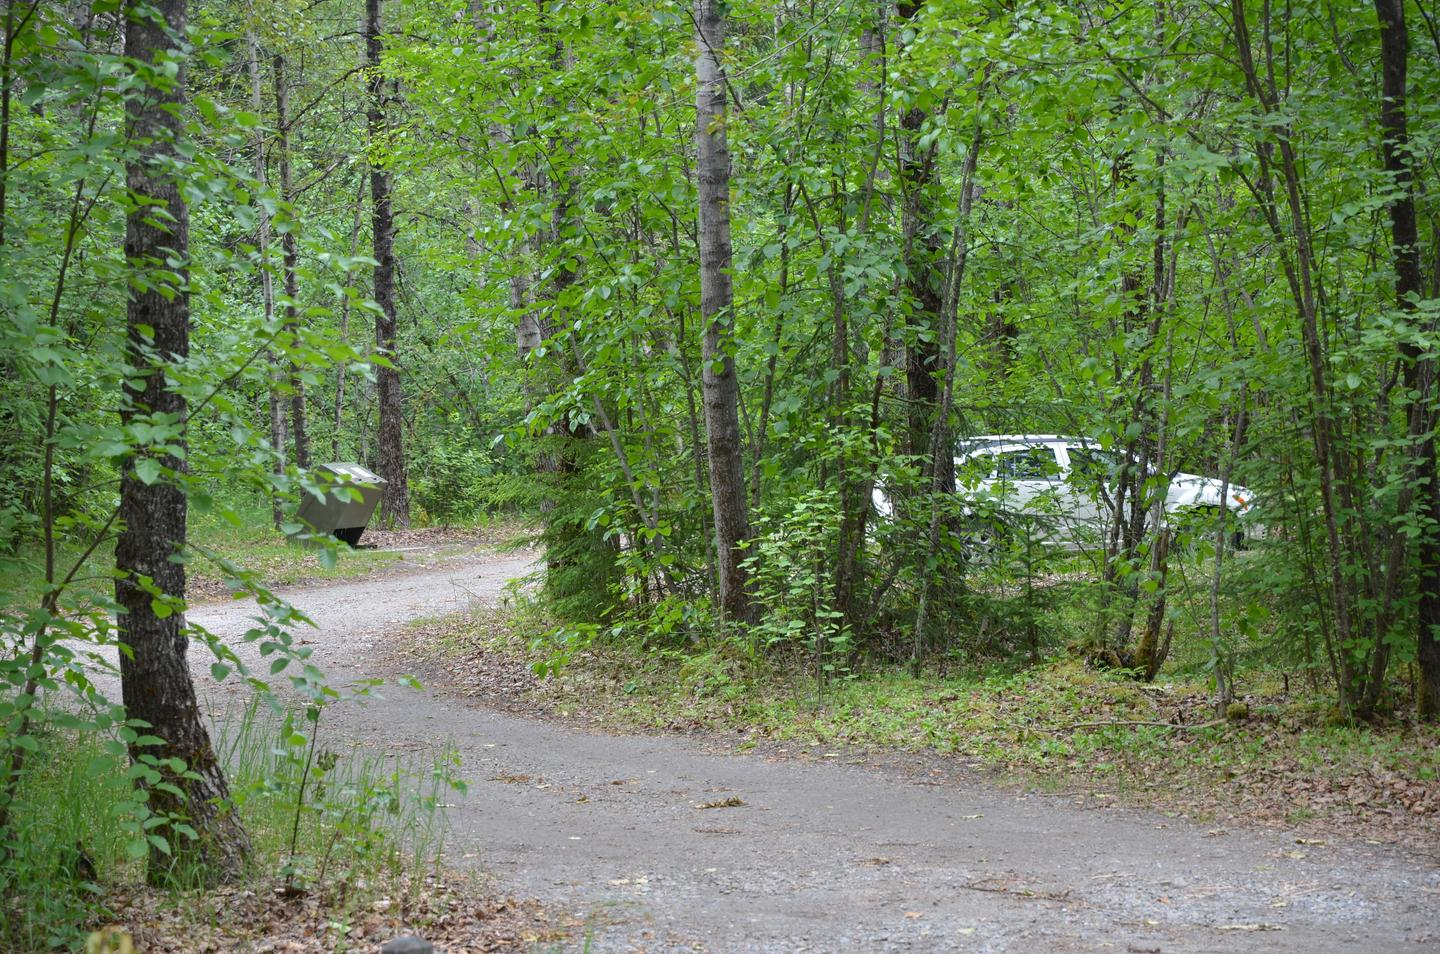 Nestled in the treesThe Dyea Campground is nestled in the trees along the banks of the Taiya River.